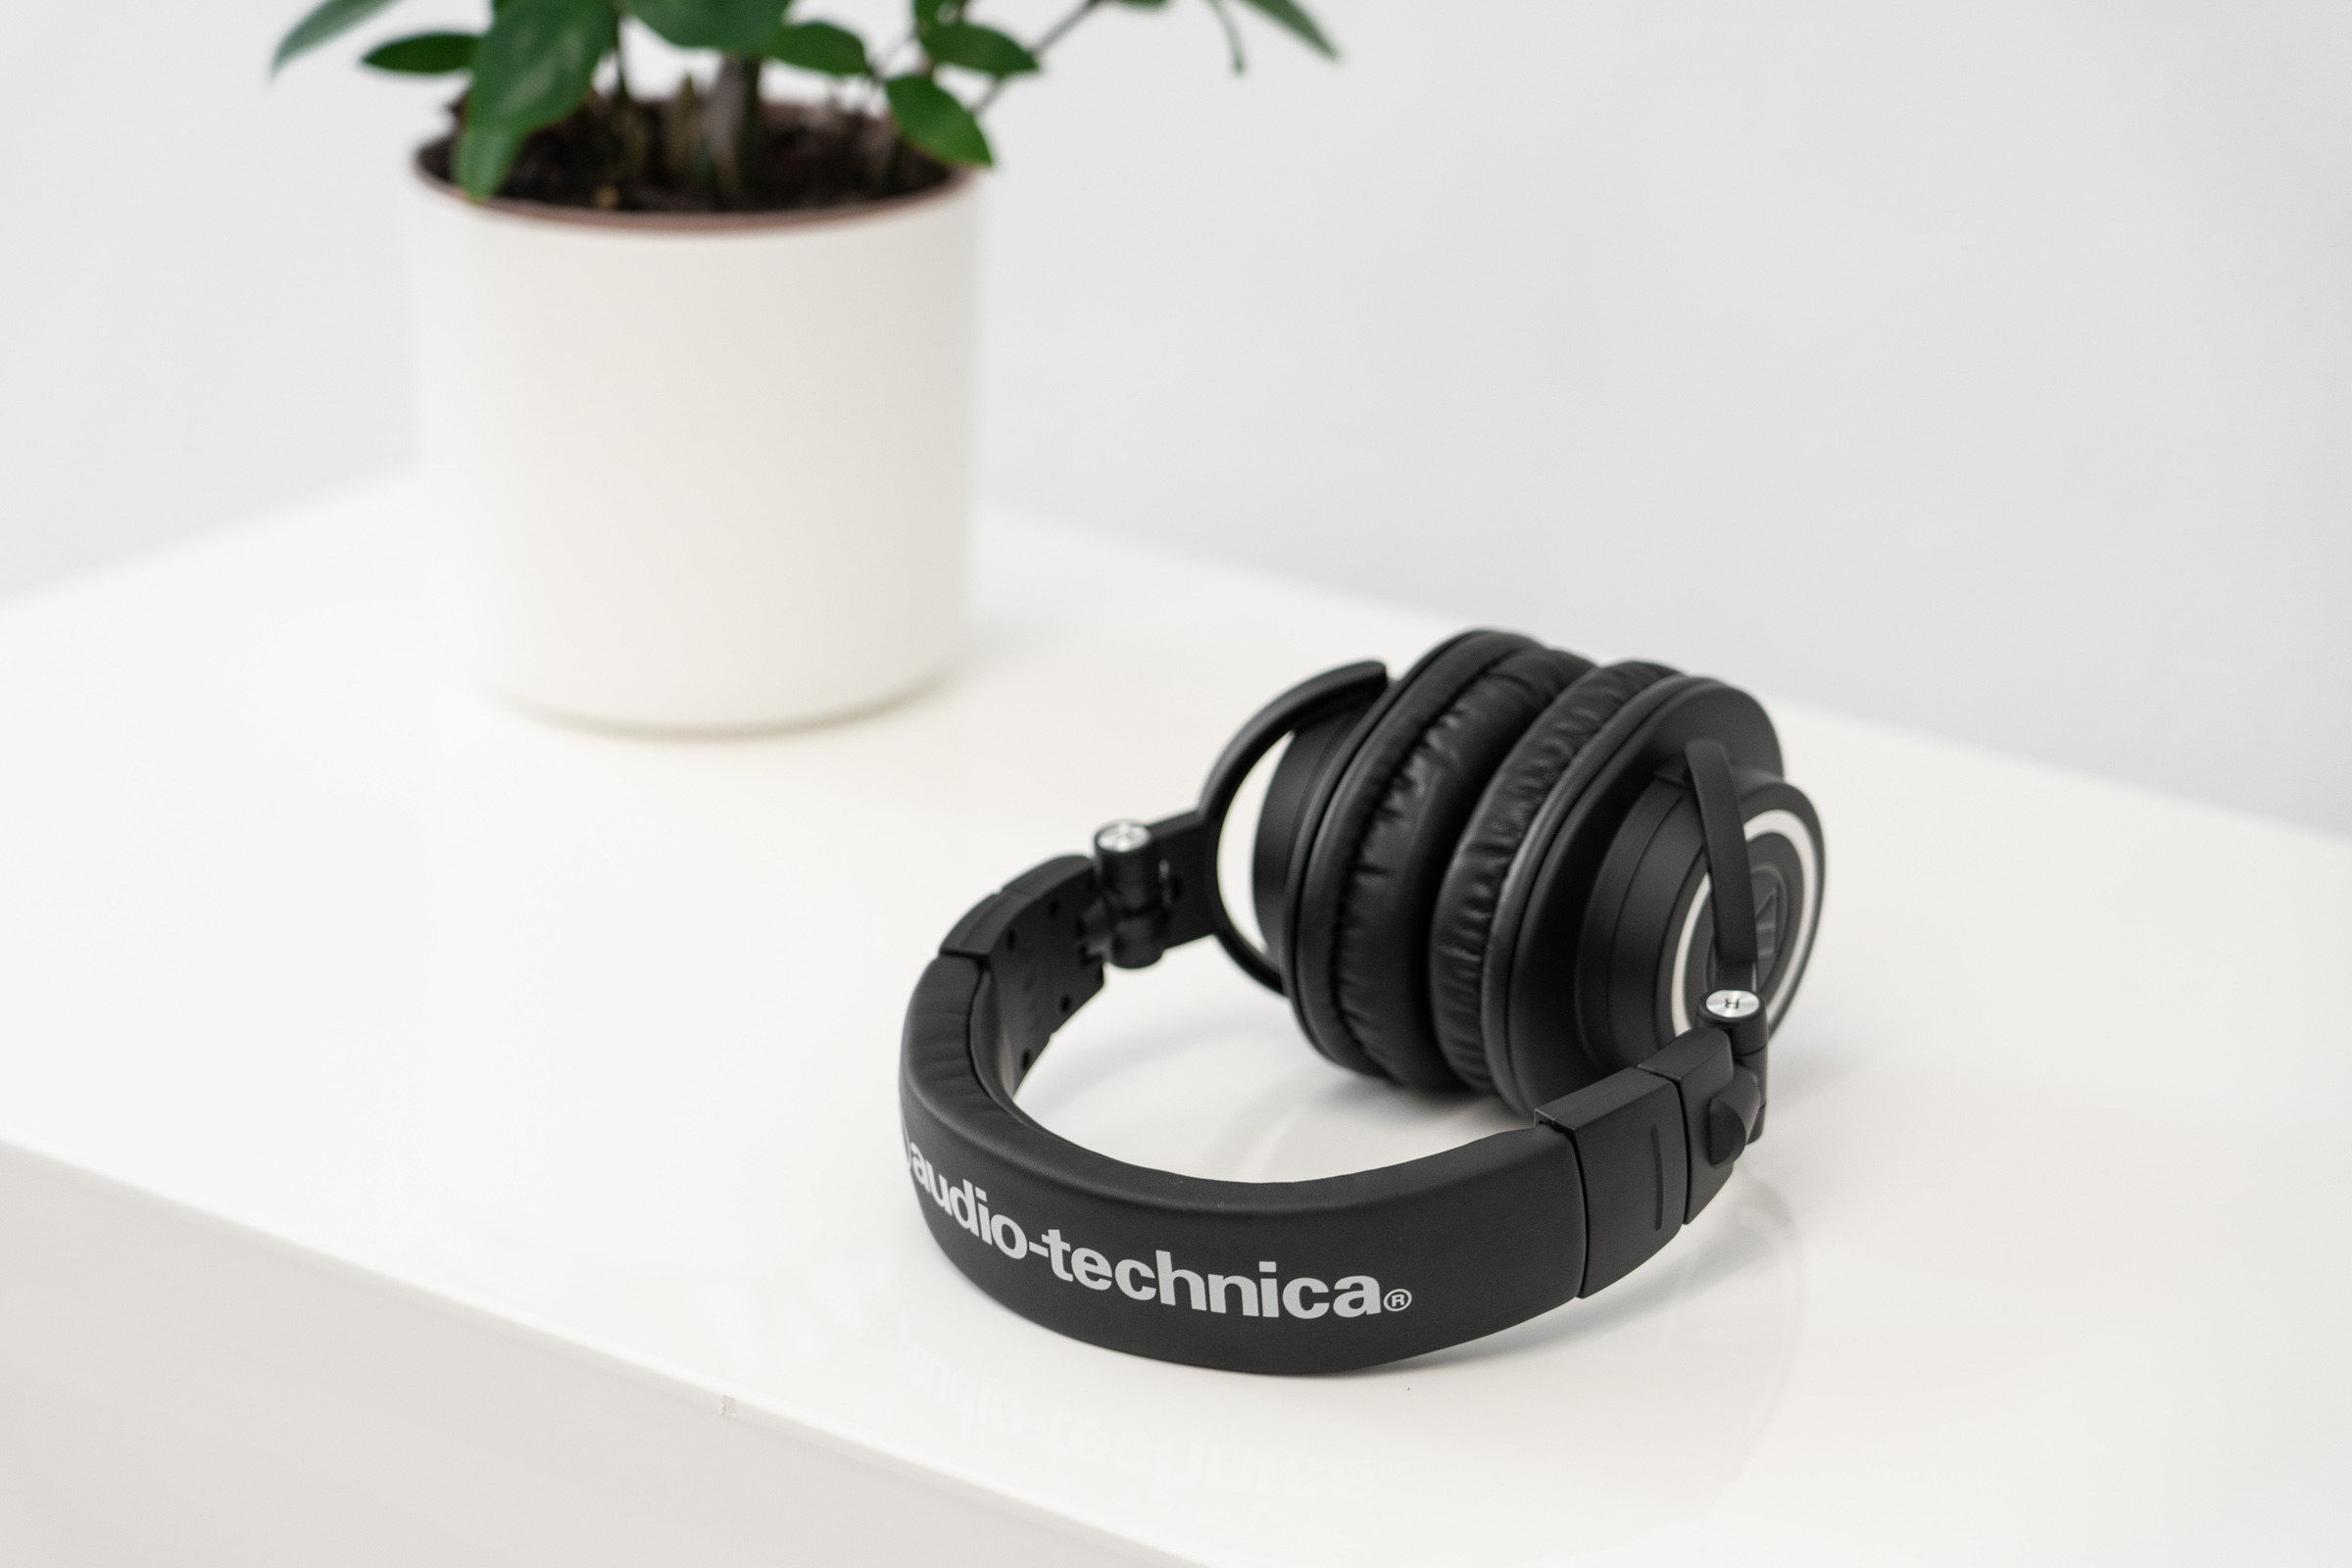 Sleek New Wireless Headphones From Audio-Technica